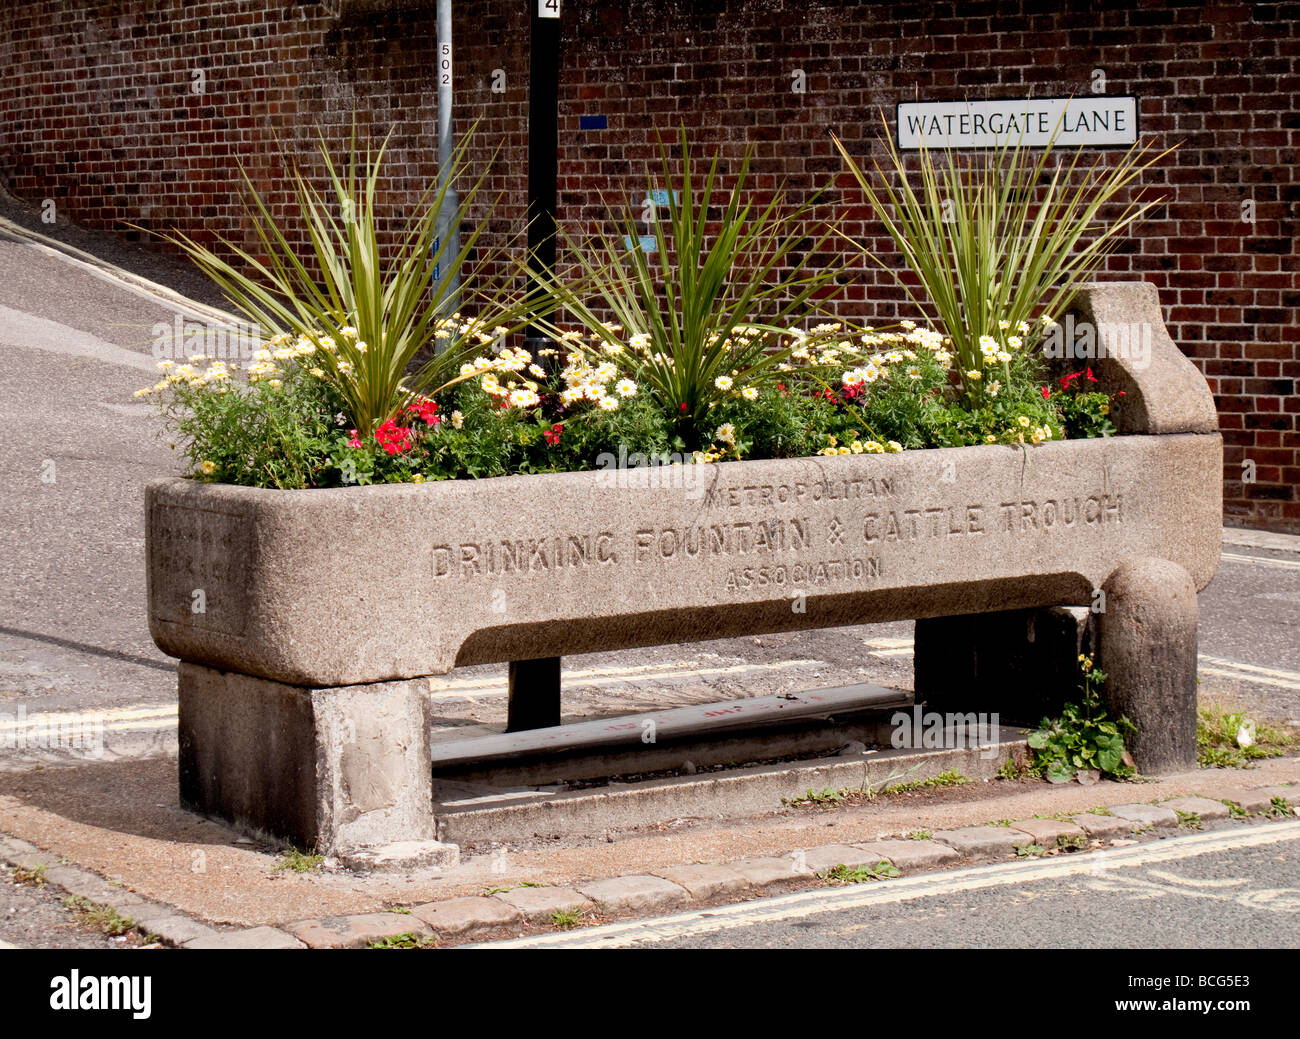 A Horse Trough Planted With Flowers Stock Photo, Royalty